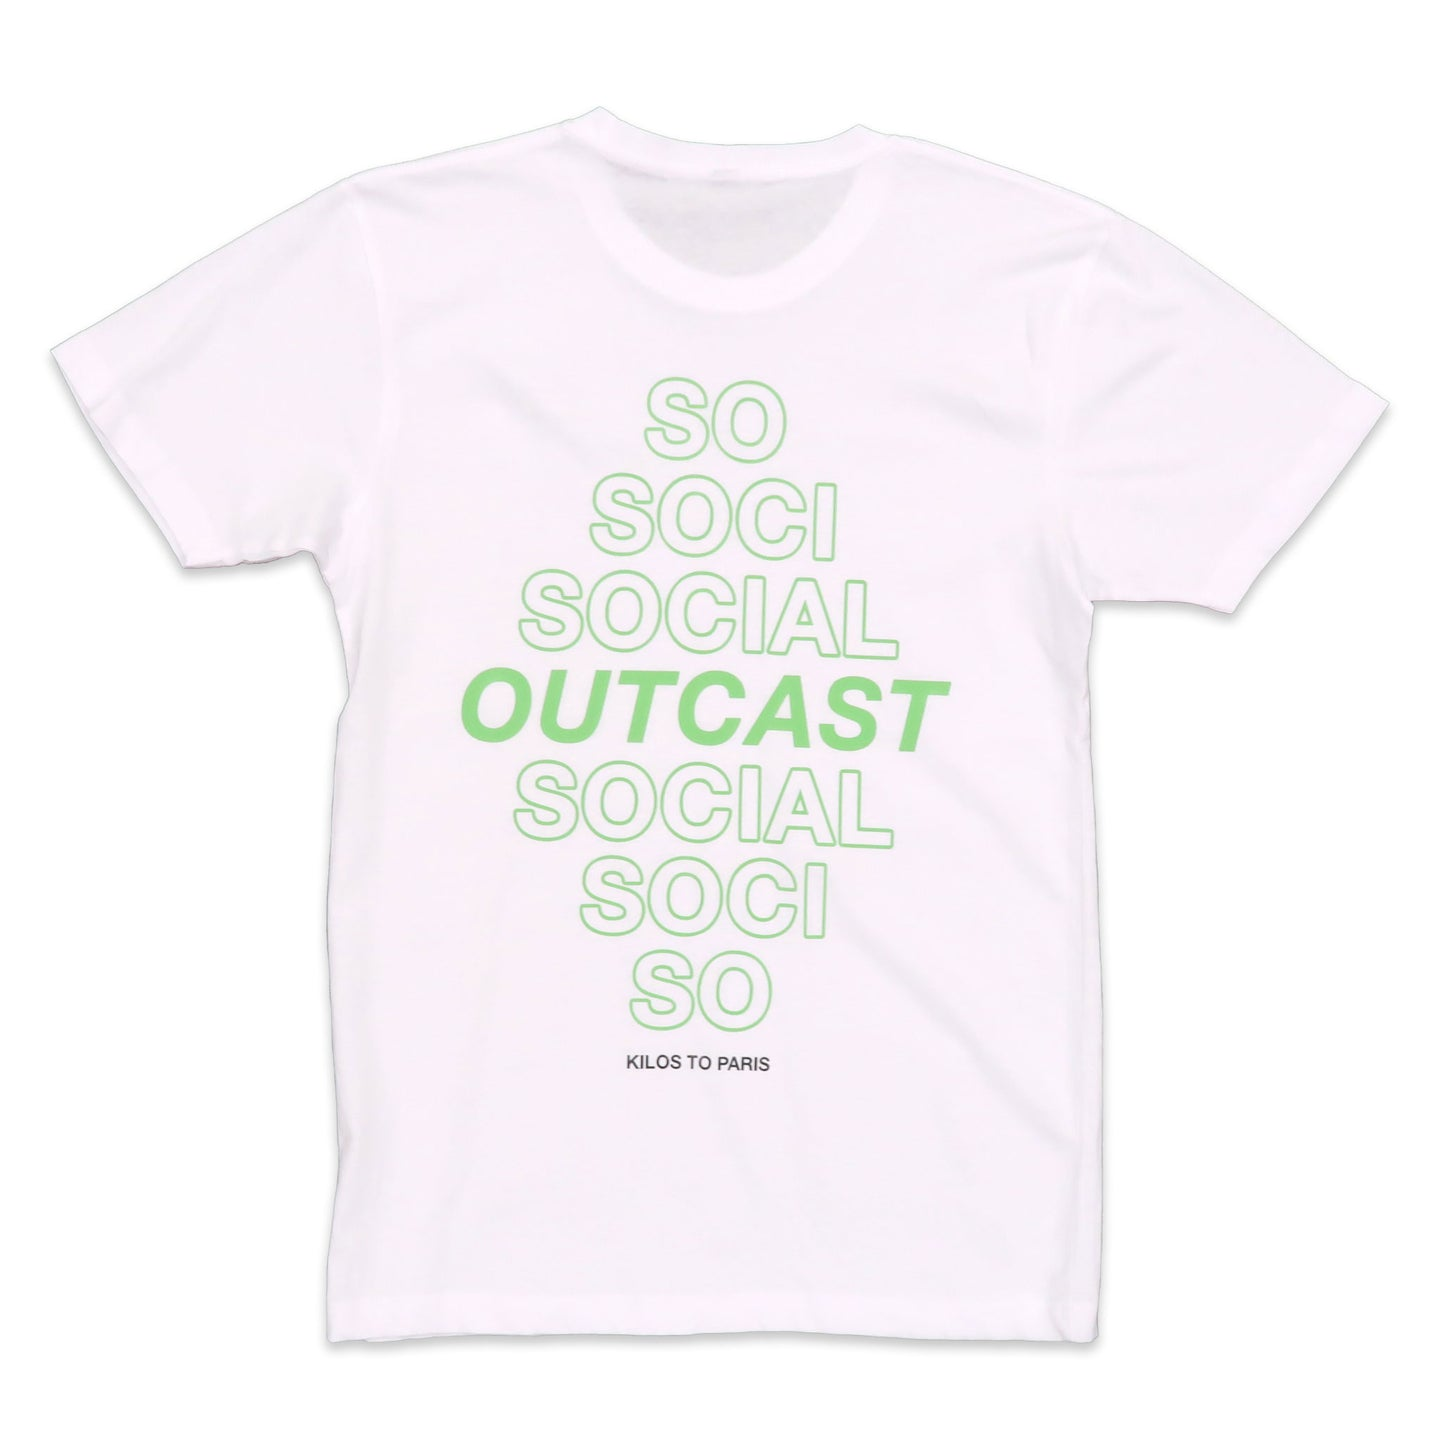 Social Outcast Tee in White and Green